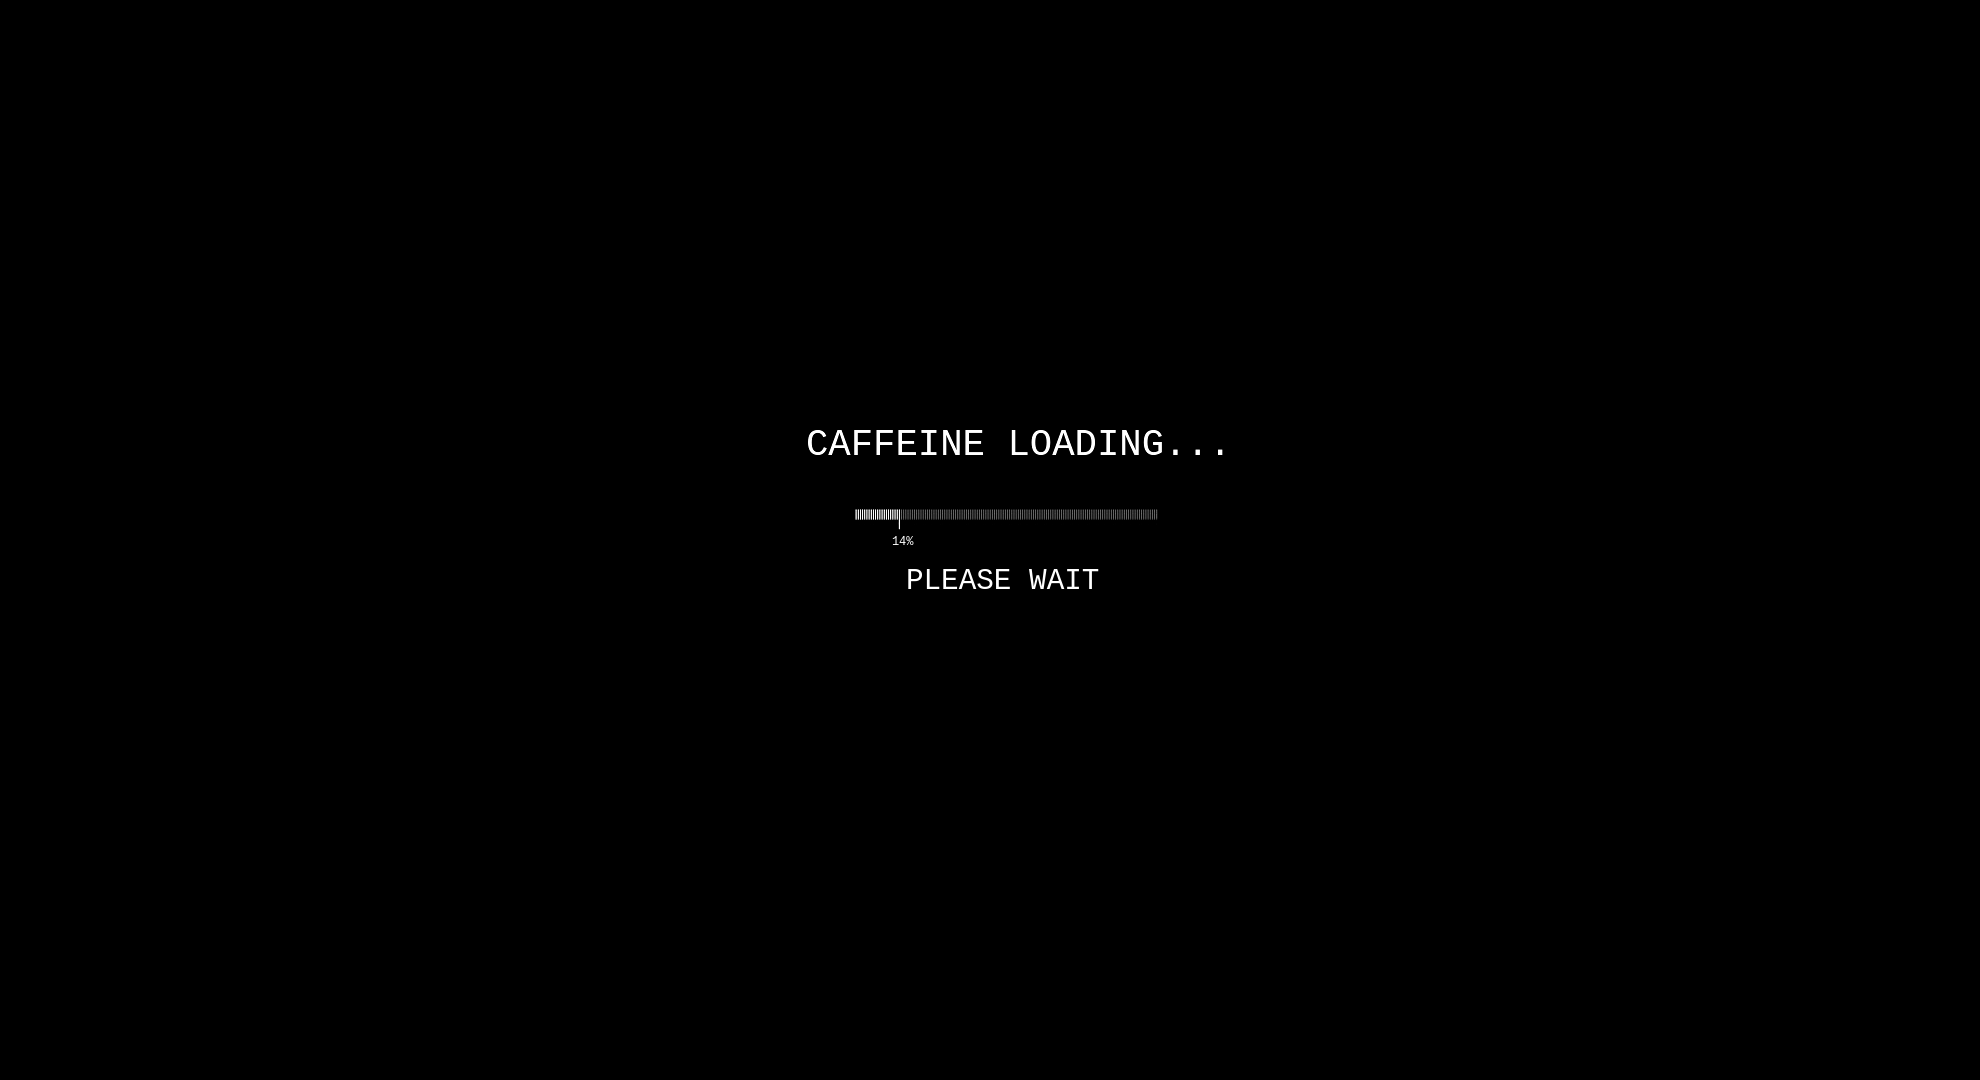 Cool Quote Wallpapers Hd 1920x1080 Caffeine Loading Please Wait Full Hd Wallpaper And